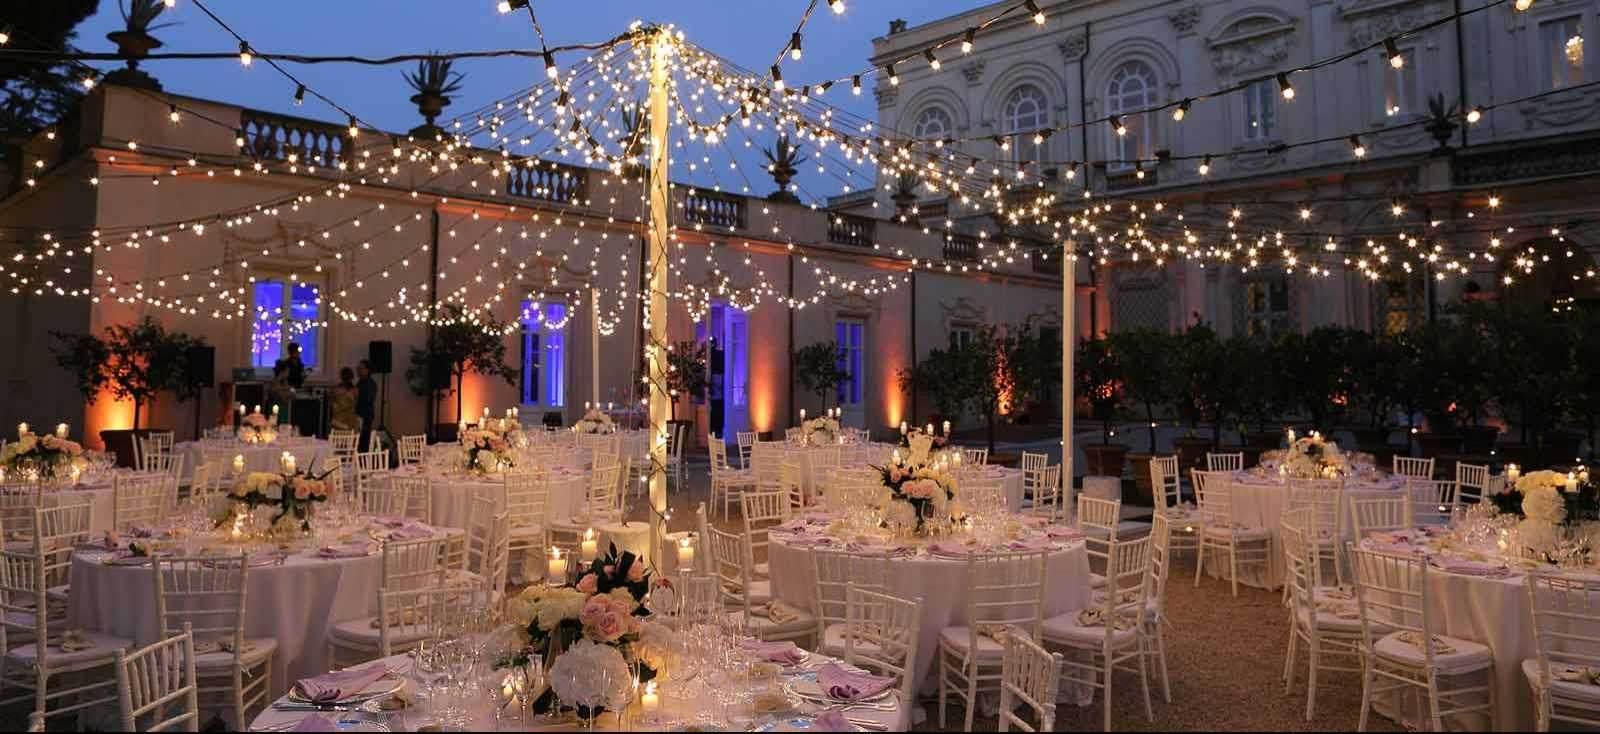 Wedding Venues In Rome Celebrations